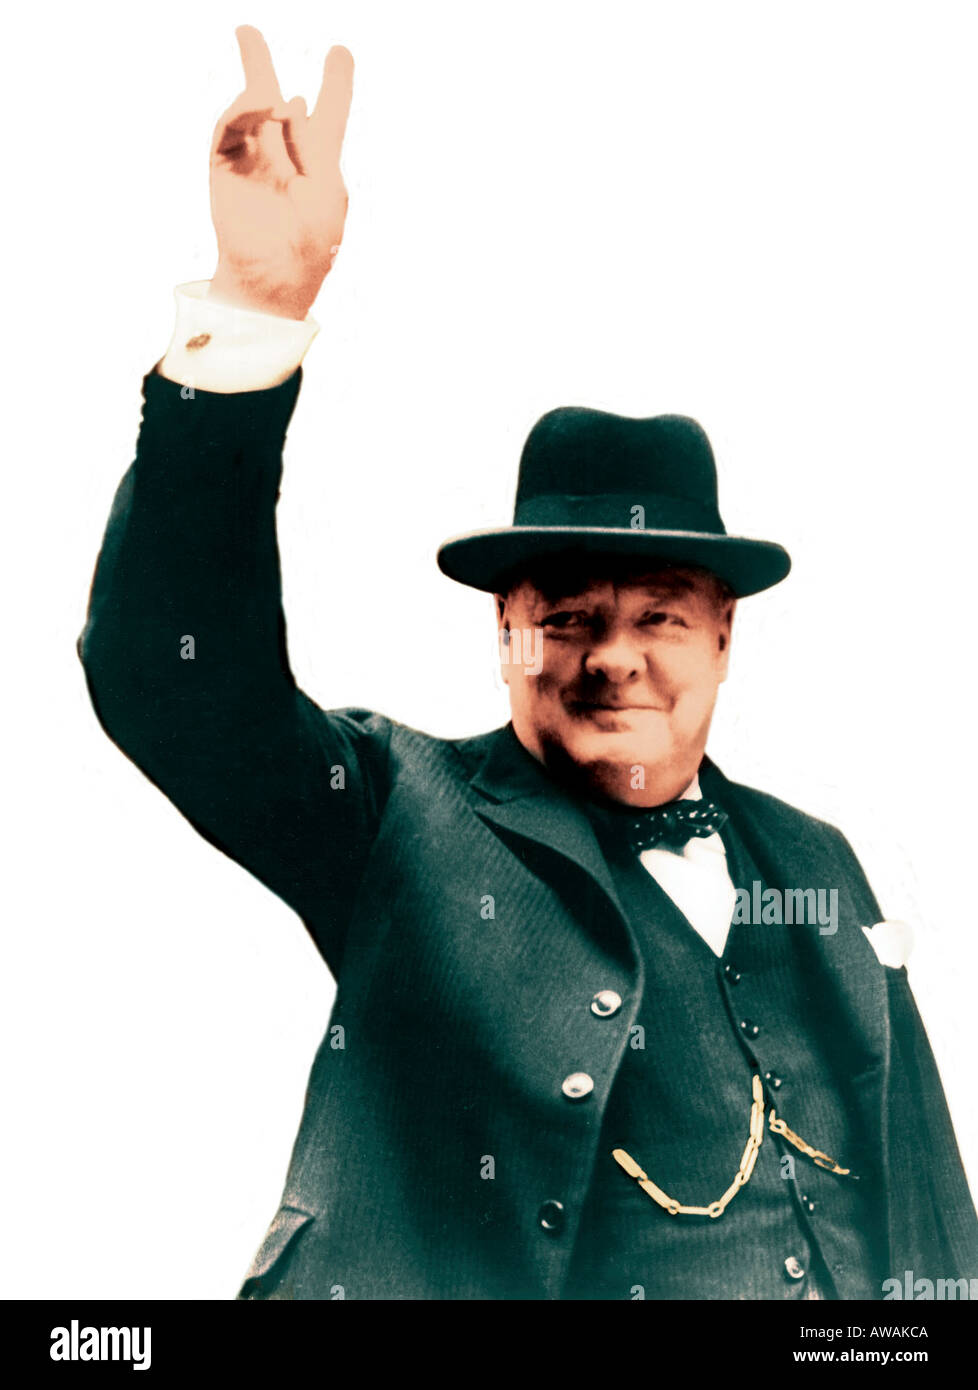 WINSTON CHURCHILL (1874-1965) giving his famous V for Victory sign as British Prime Minister in April1945 - Stock Image